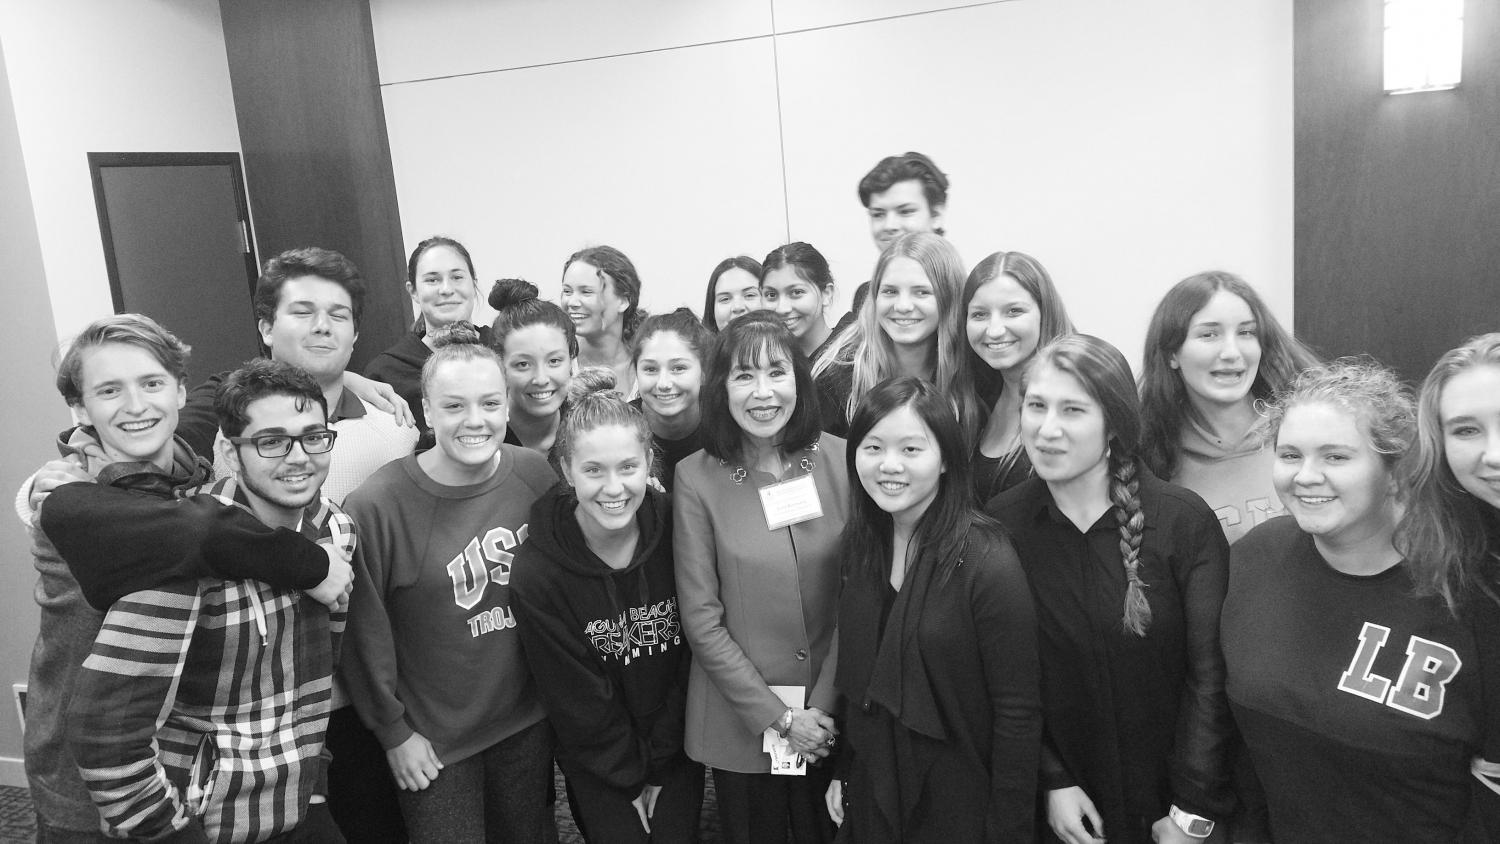 APUSH students gather with Karen Korematsu after the presentation. Students were encouraged to enter the competition for personal experience and the chance to learn more about democracy, the legal system and the reality about Japanese internment.